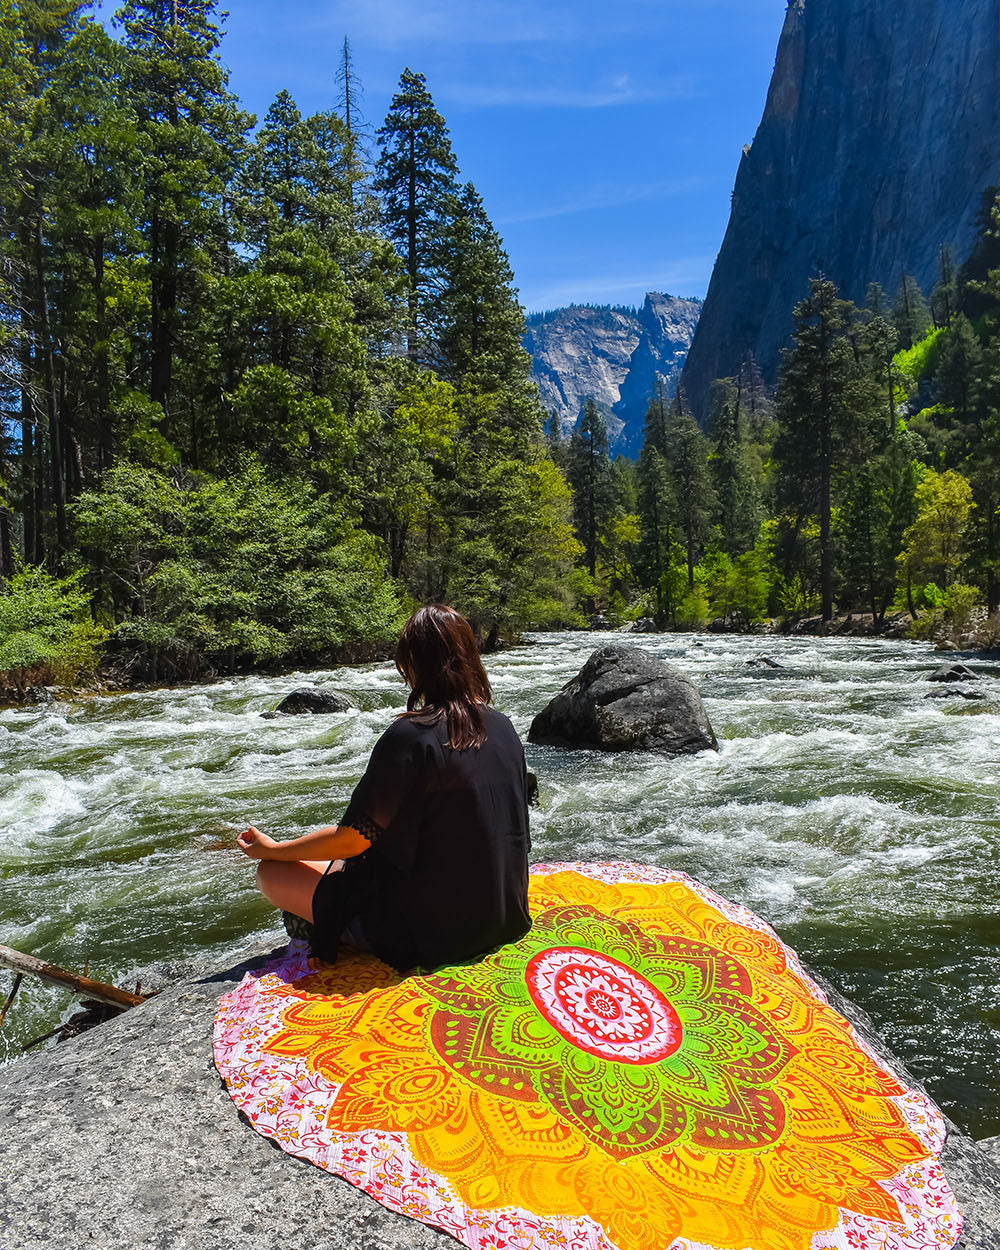 5 Essentials for the Hippie Soul - Nature: The hippie soul will not survive with out nature for long. From the beaches, to the mountains, to the desert oasis, and everything in between, time spent outdoors enjoying nature is what makes the hippie heart tick.